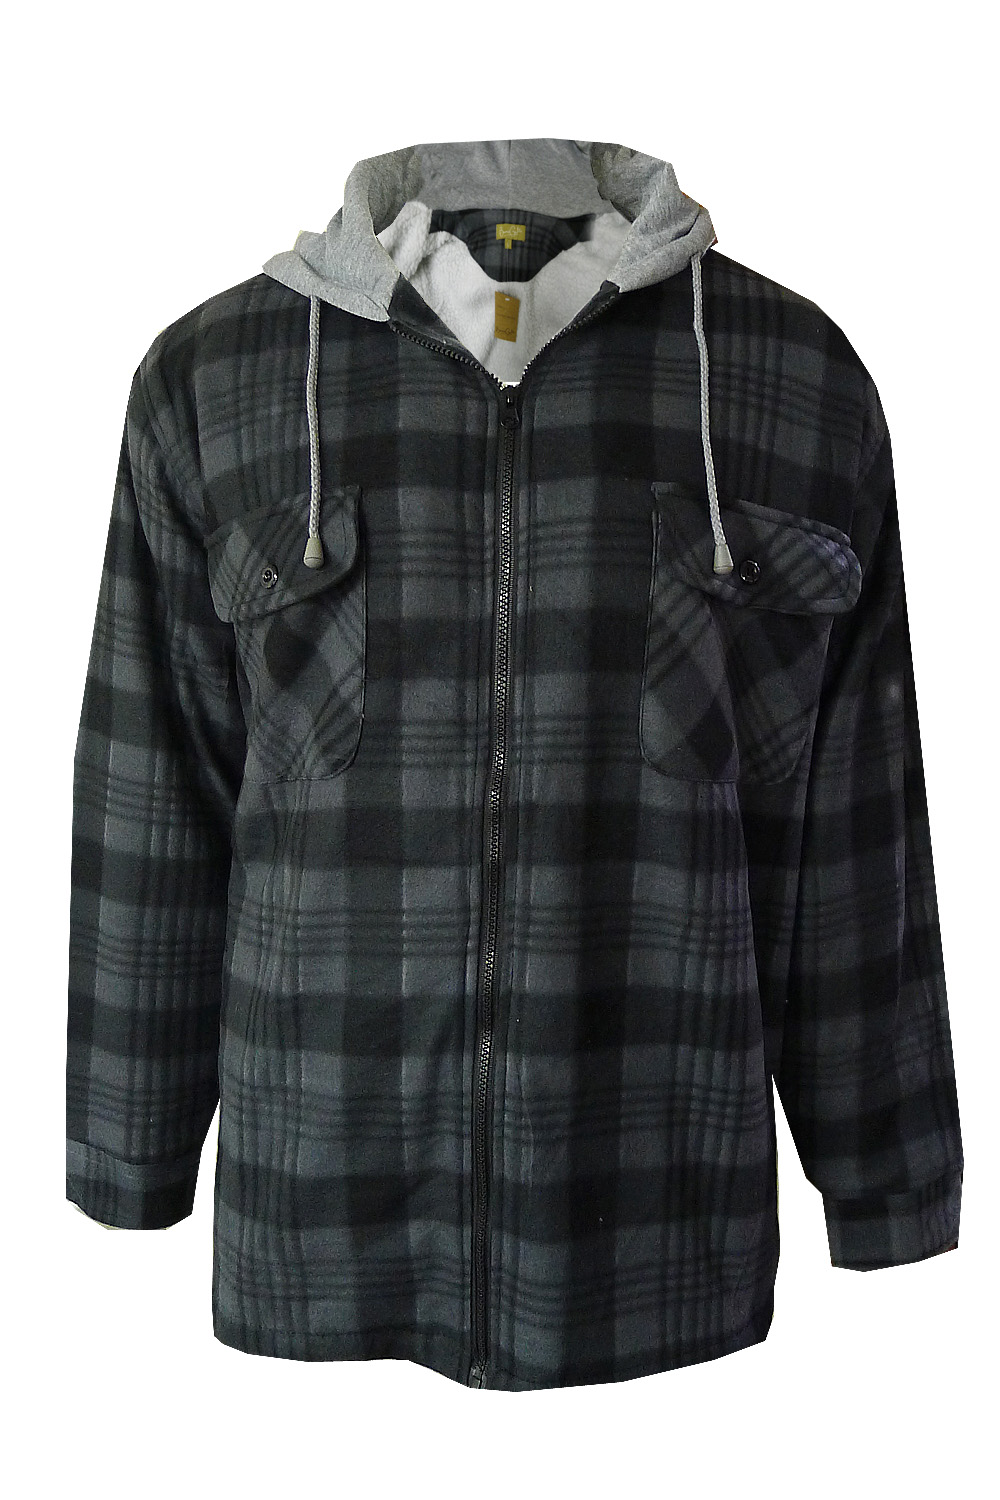 mens check lumberjack jacket fleece lined flannel hooded plaid worker shirt ebay. Black Bedroom Furniture Sets. Home Design Ideas